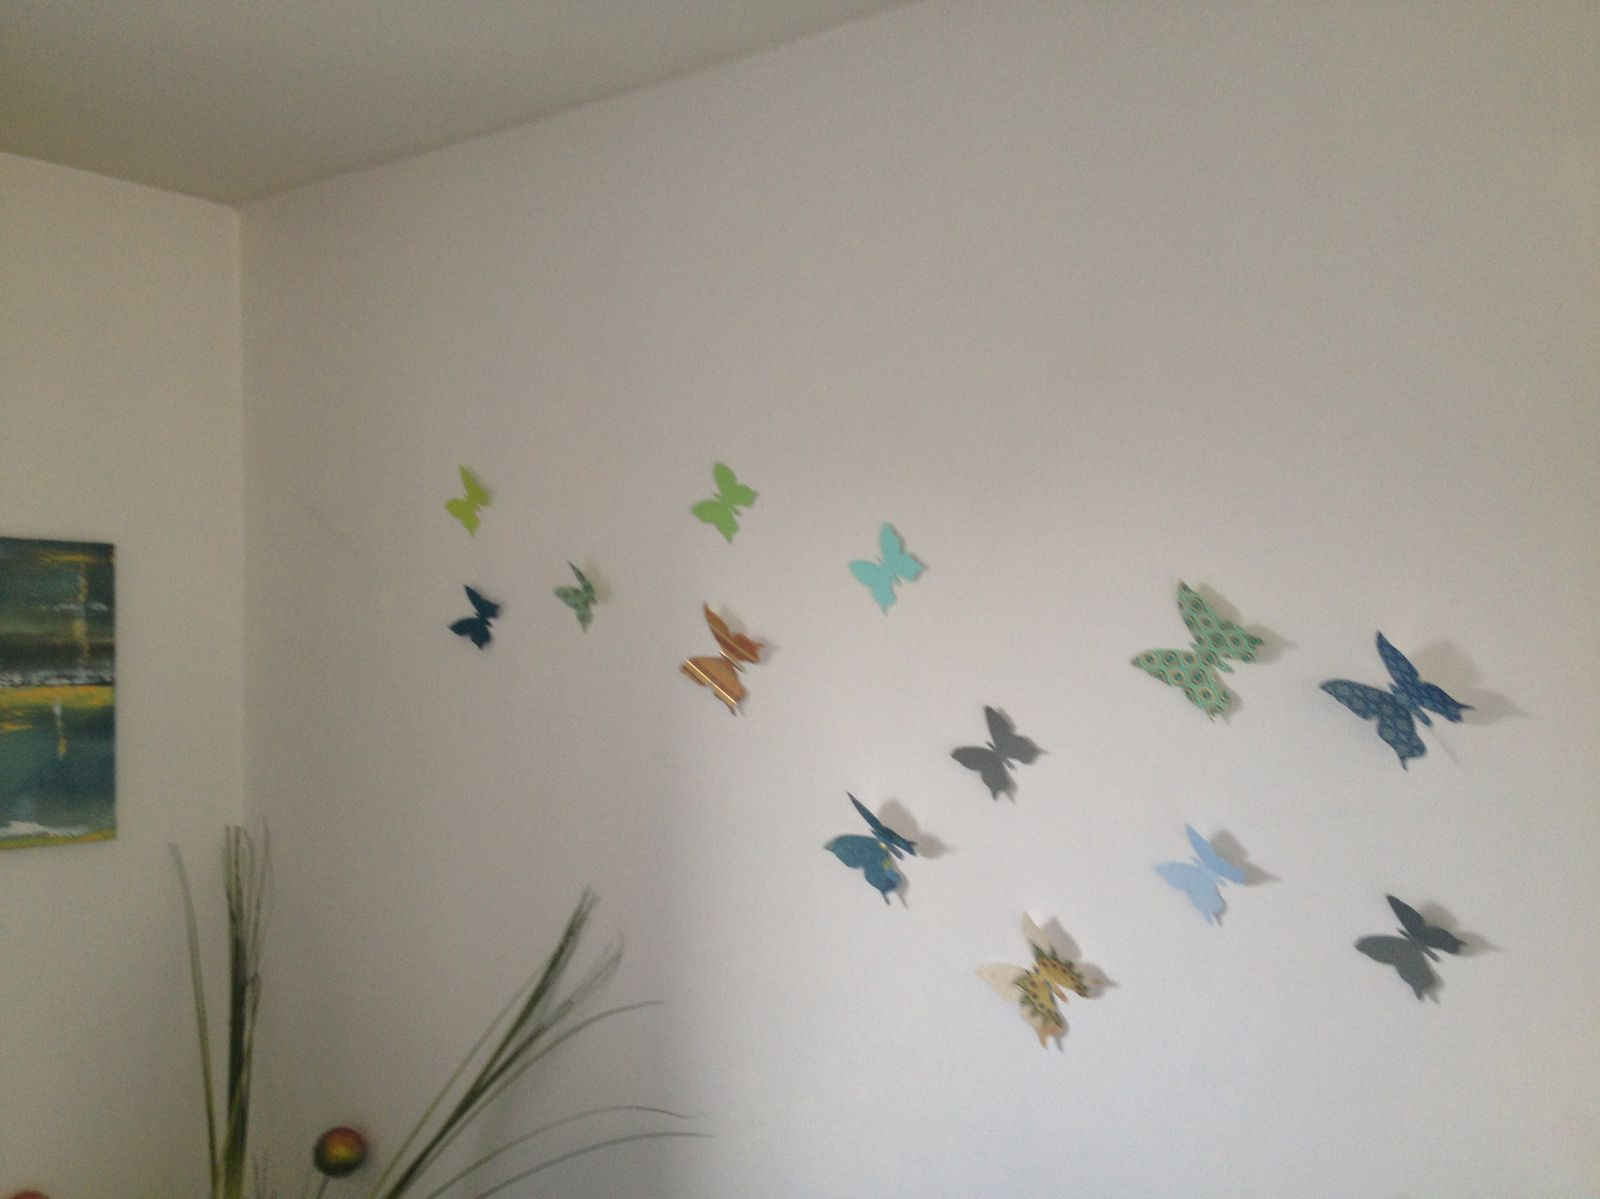 diy un envol de papillons sur un mur by bridget. Black Bedroom Furniture Sets. Home Design Ideas